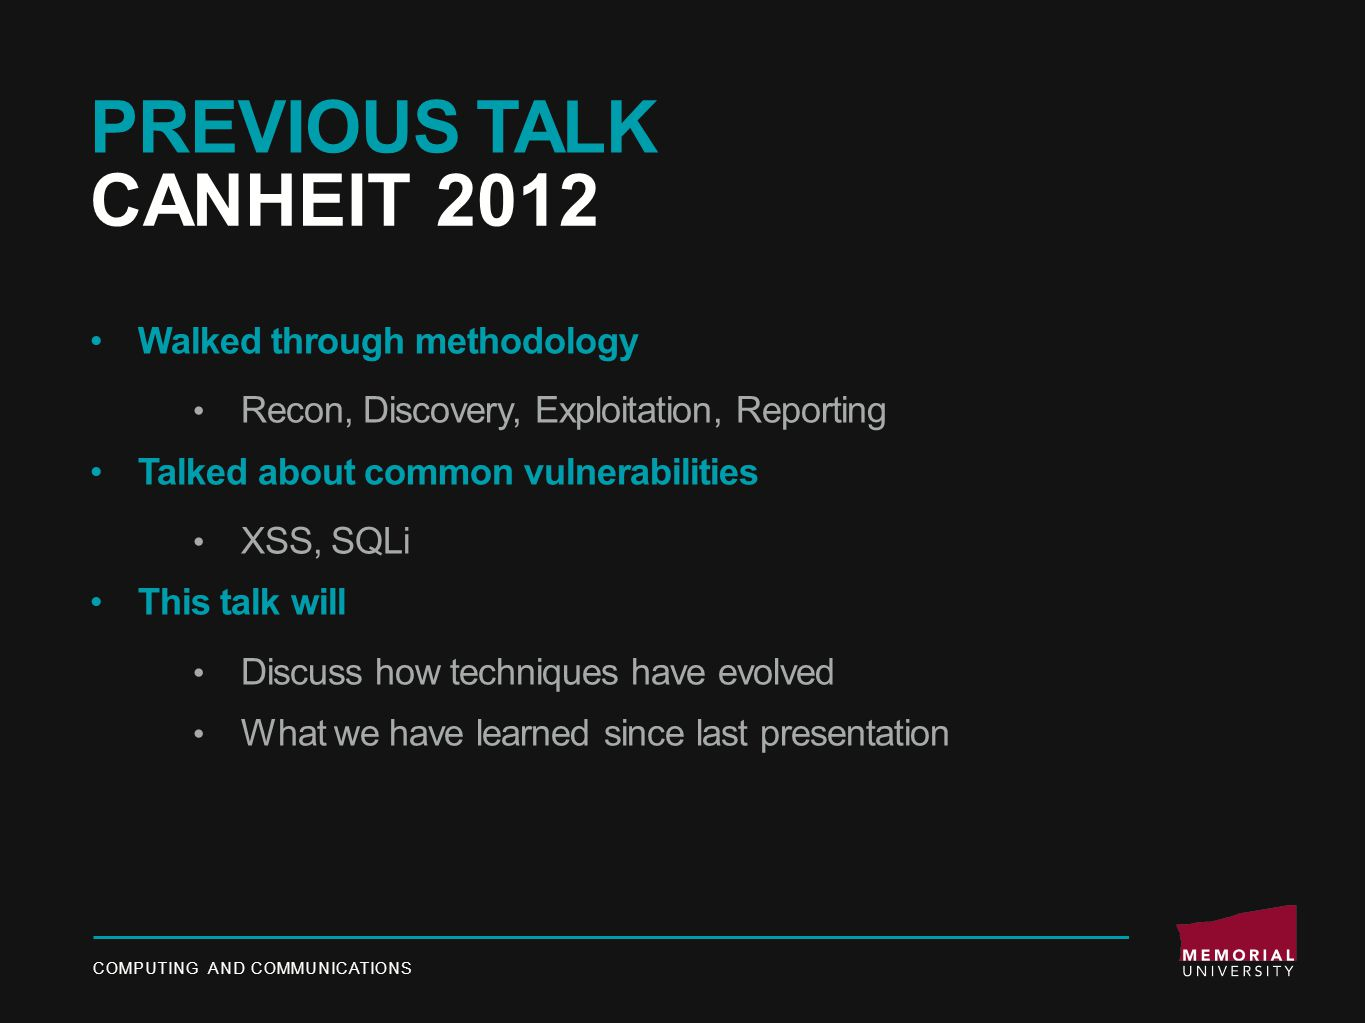 PREVIOUS TALK CANHEIT 2012 Walked through methodology Recon, Discovery, Exploitation, Reporting Talked about common vulnerabilities XSS, SQLi This talk will Discuss how techniques have evolved What we have learned since last presentation COMPUTING AND COMMUNICATIONS